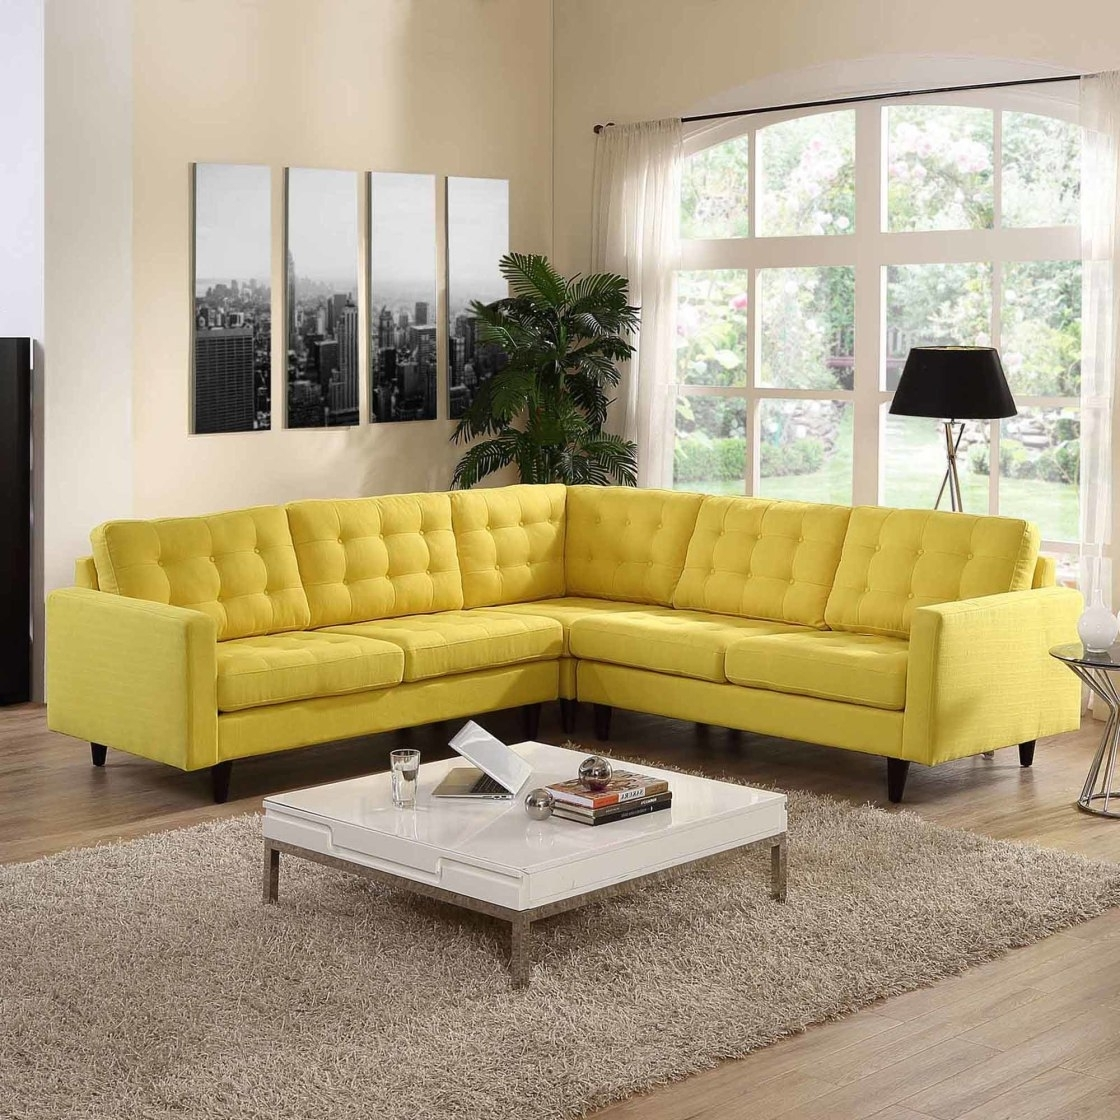 Poundex 2 Pcs Sectional Sofa F6985 $618 Description : The Future Intended For Best And Newest Ventura County Sectional Sofas (View 8 of 15)